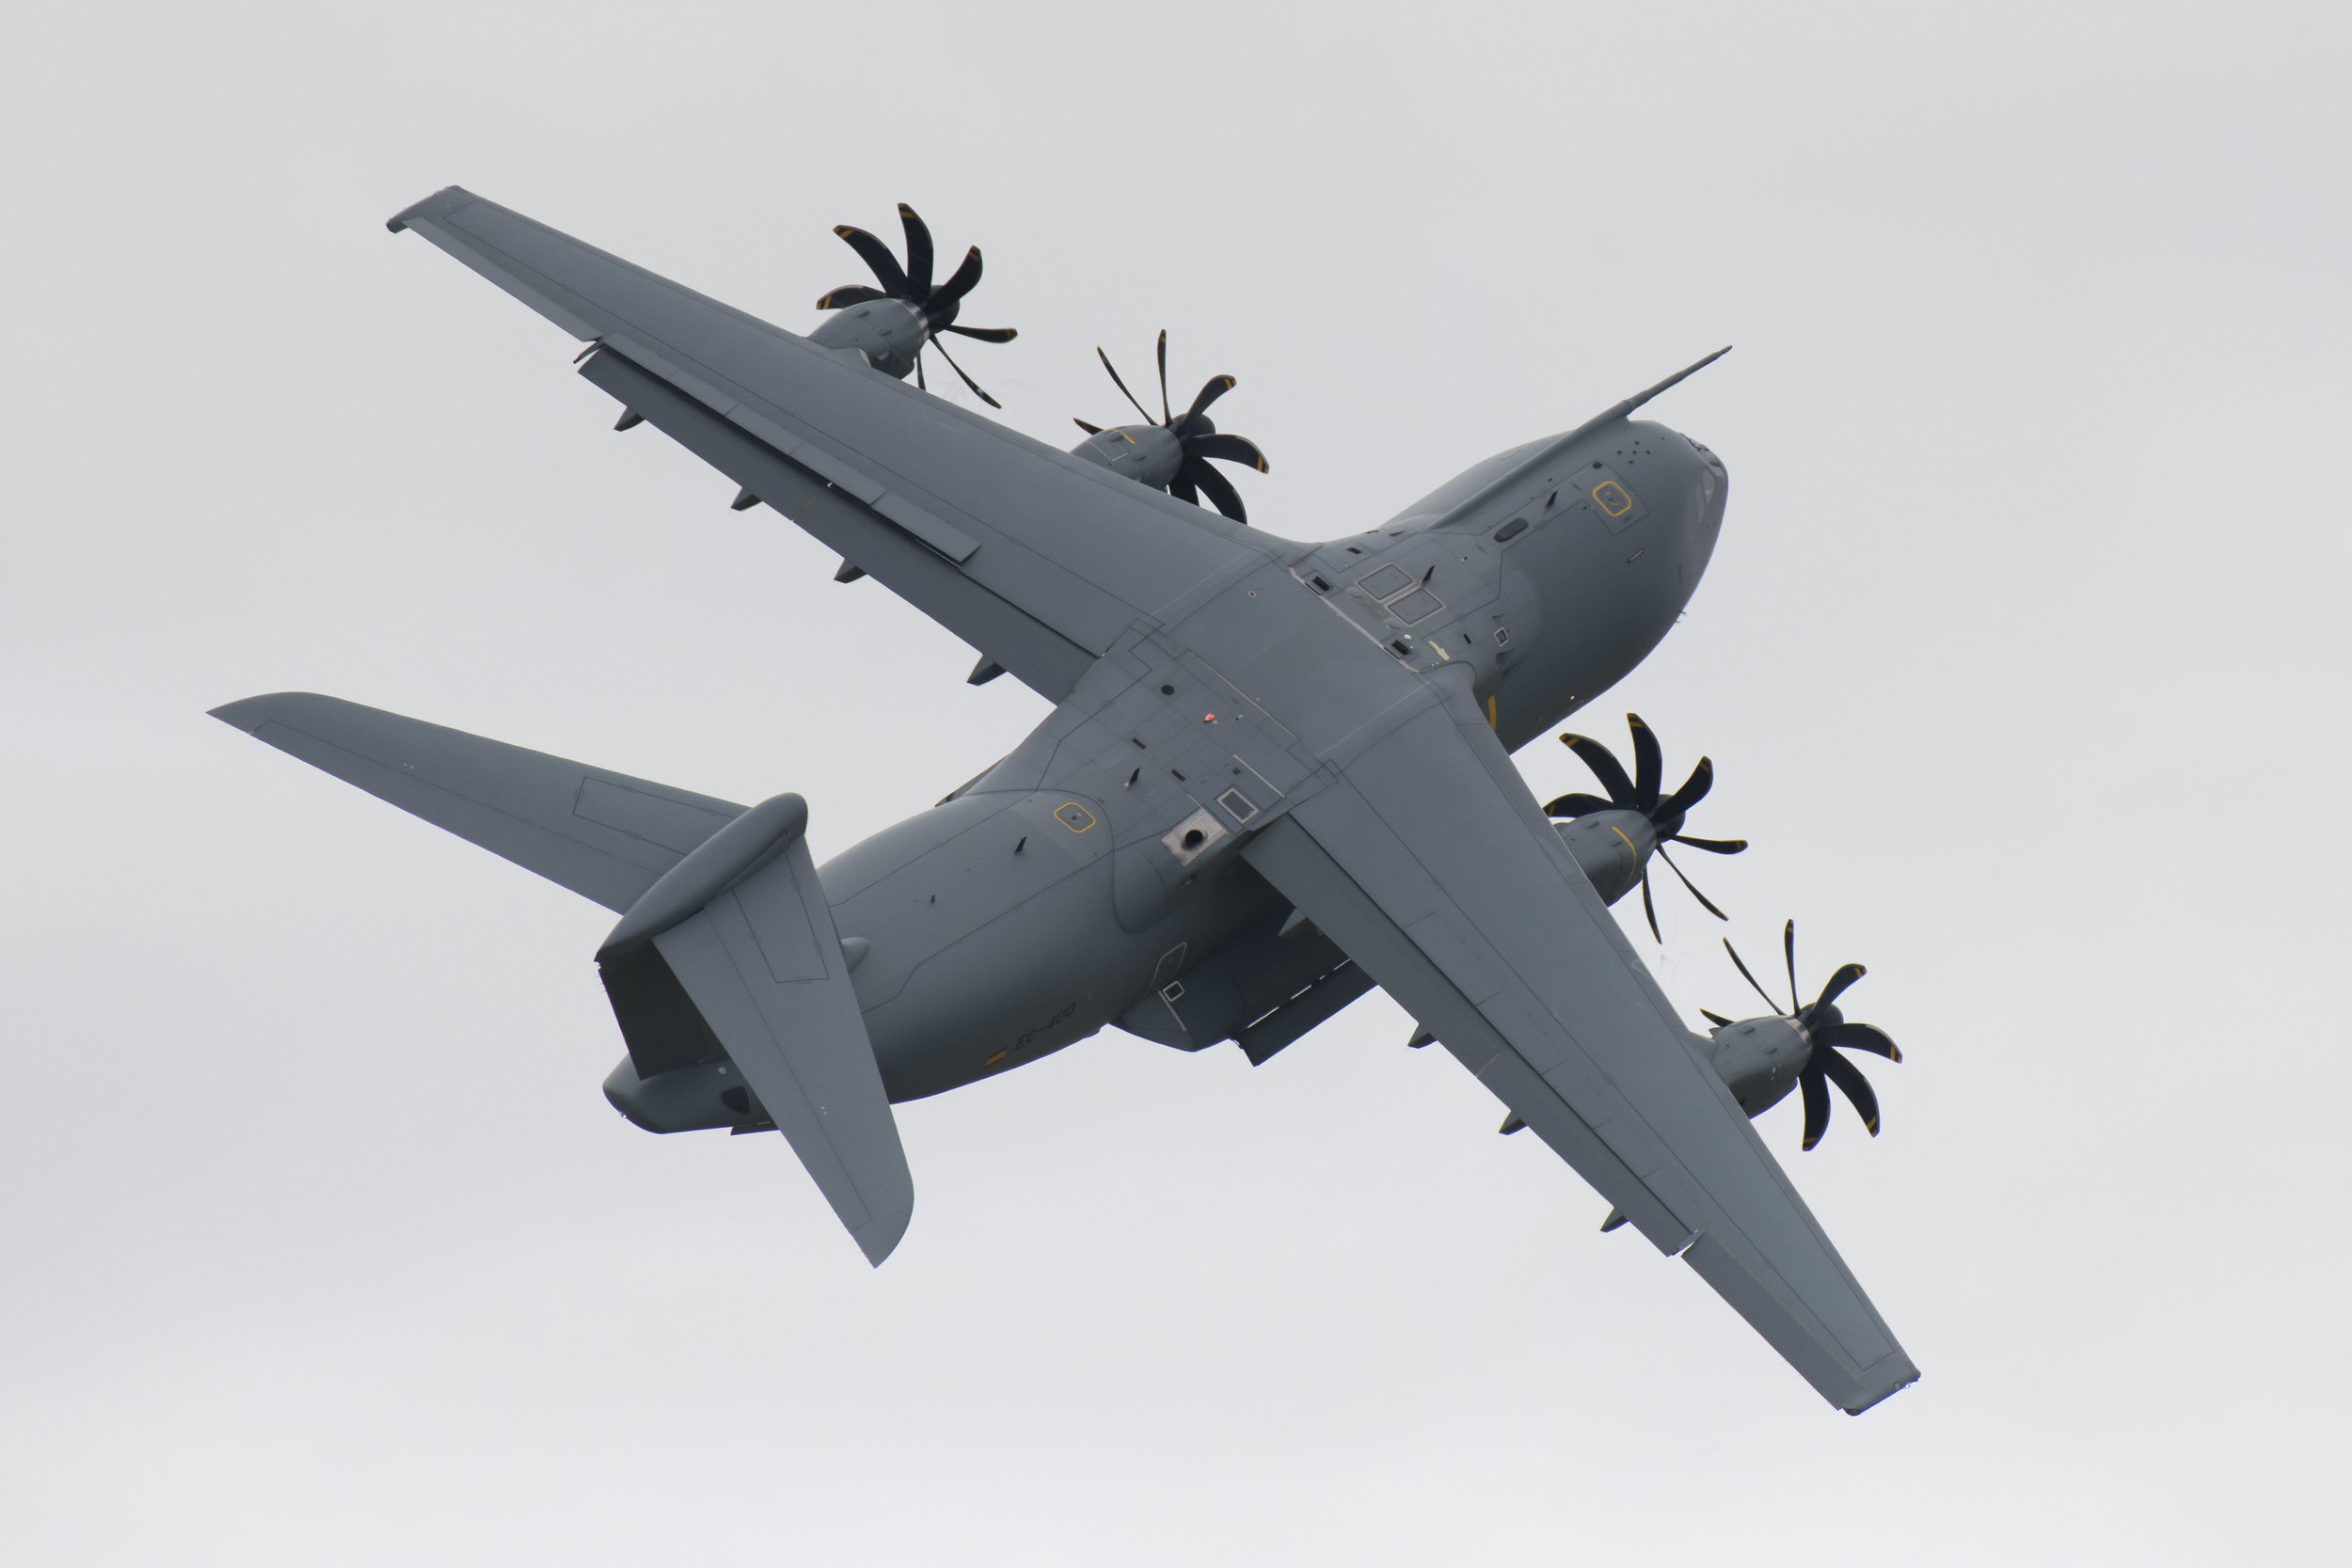 FAIRFORD, ENGLAND - JULY 21: The Airbus A400M Atlas performs during the International Air Tattoo at RAF Fairford on July 21, 2019 in Fairford, England. The Royal International Air Tattoo (RIAT) is the world's largest military air show, held in support of The Royal Air Force Charitable Trust. (Photo by Matthew Horwood/Getty Images)